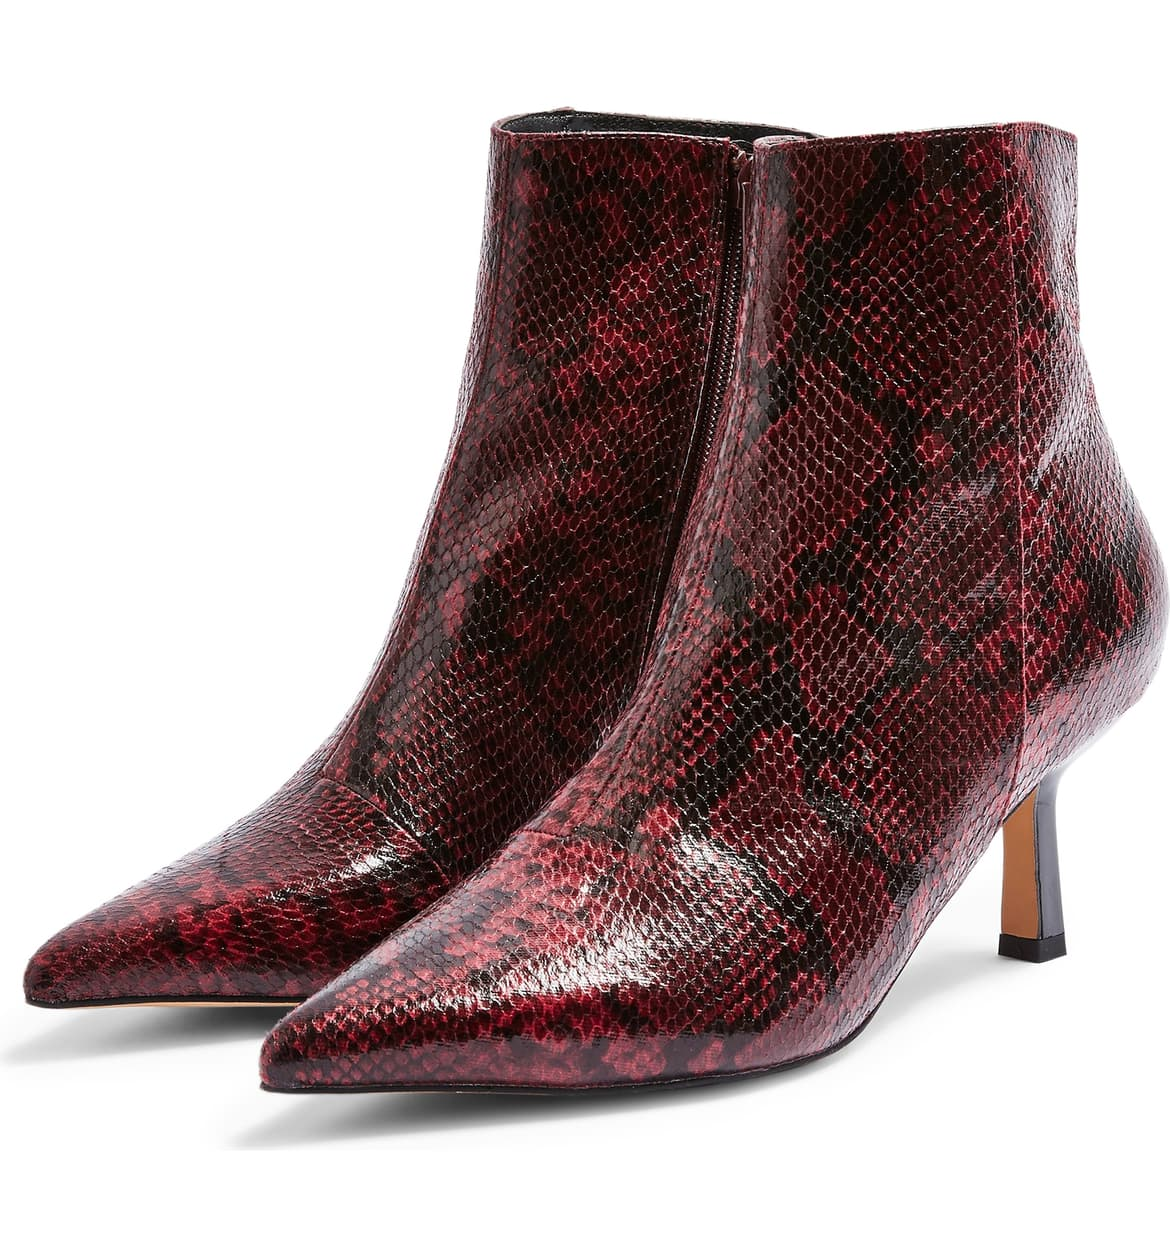 Snake skin boots for the win! Keep your street style on point with this sharp bootie set on a sleek stiletto heel,{ }$75. (Image: Nordstrom){ }